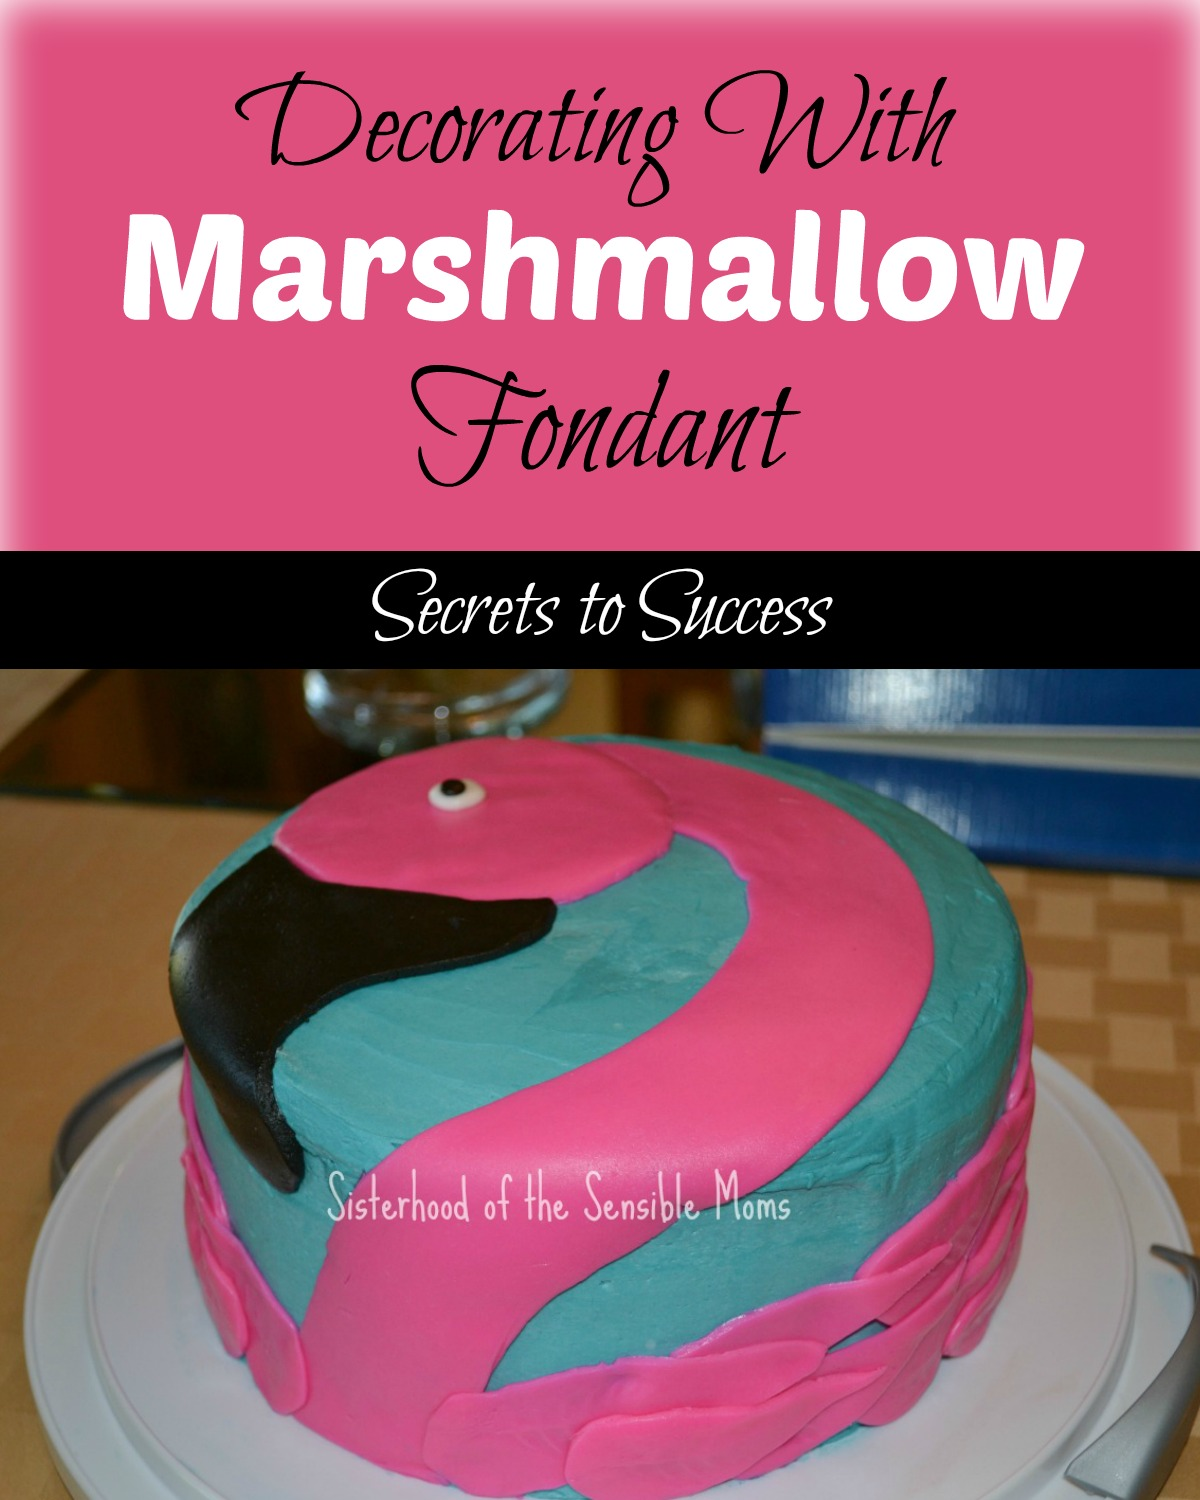 Decorating With Marshmallow Fondant! A flamingo party theme works for birthdays, showers, pool parties, and barbecues! Easy, DIY, and fun! Easy Cake decorating tips! Look like a pro! | Sisterhood of the Sensible Moms!